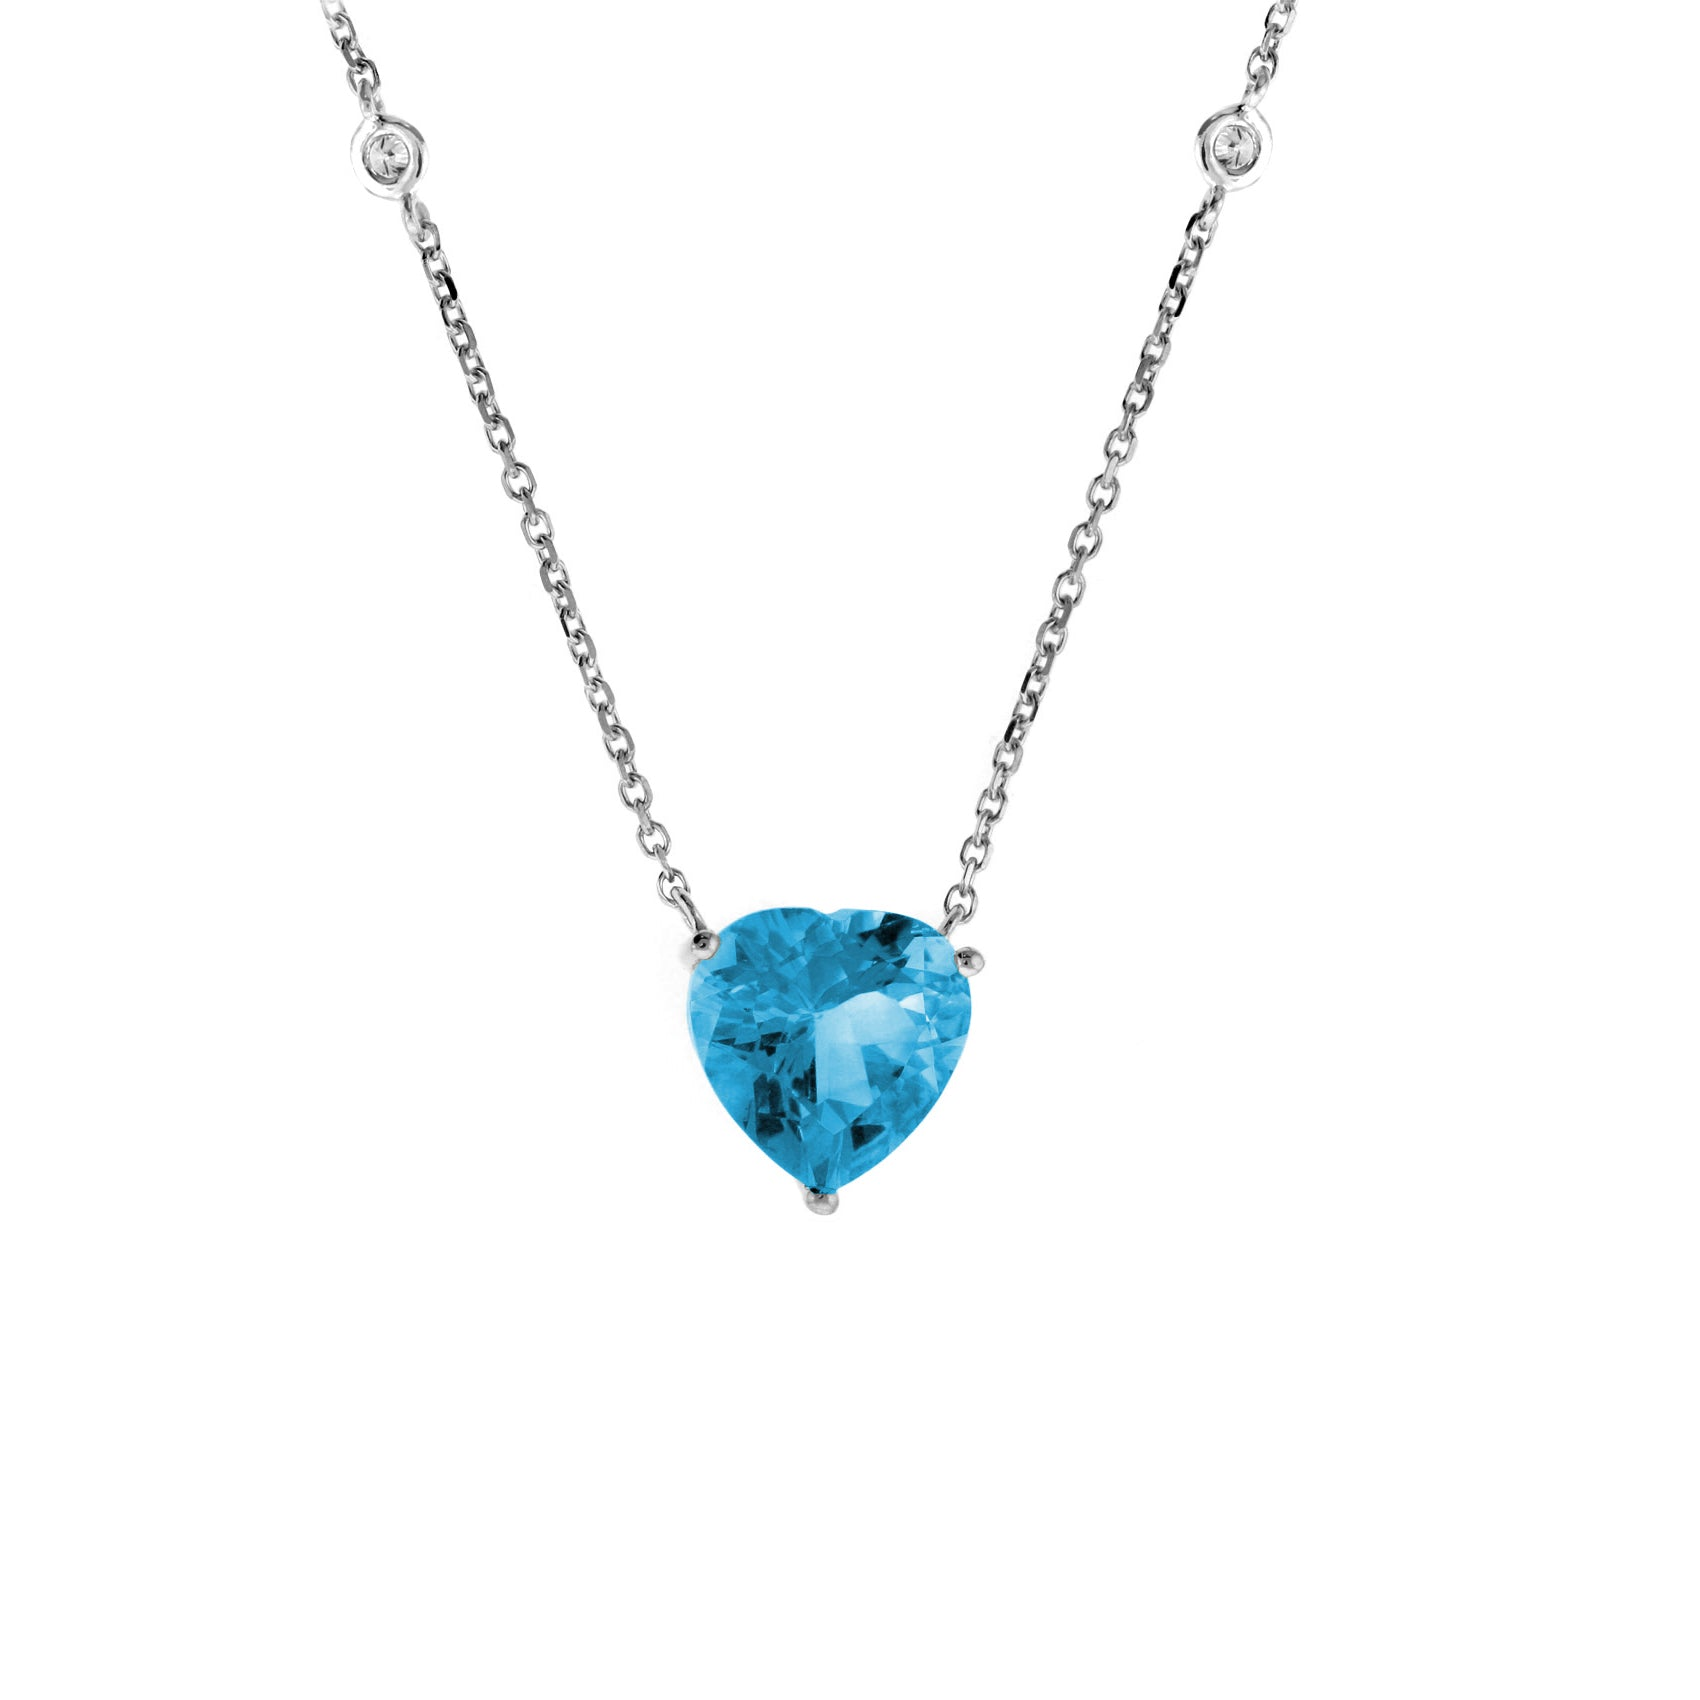 d90c3ece9 Fortunoff Fine Jewelry. Home; Blue Topaz Heart Necklace with Diamond Accent  ...